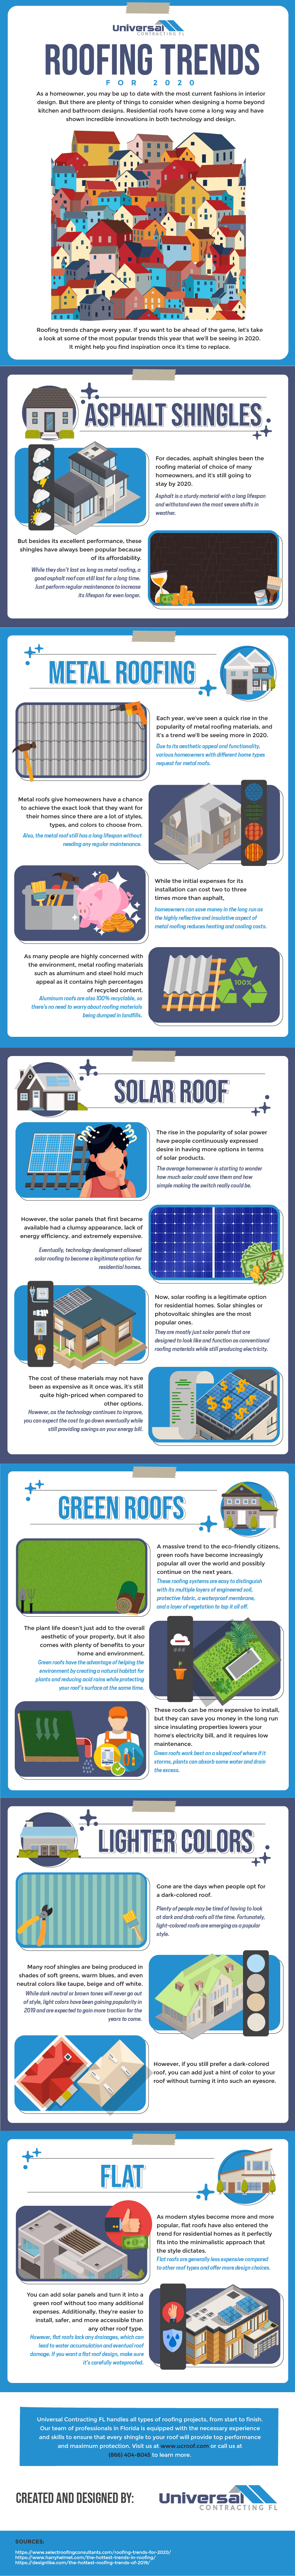 Roofing-Trends-for-2020-Infographic